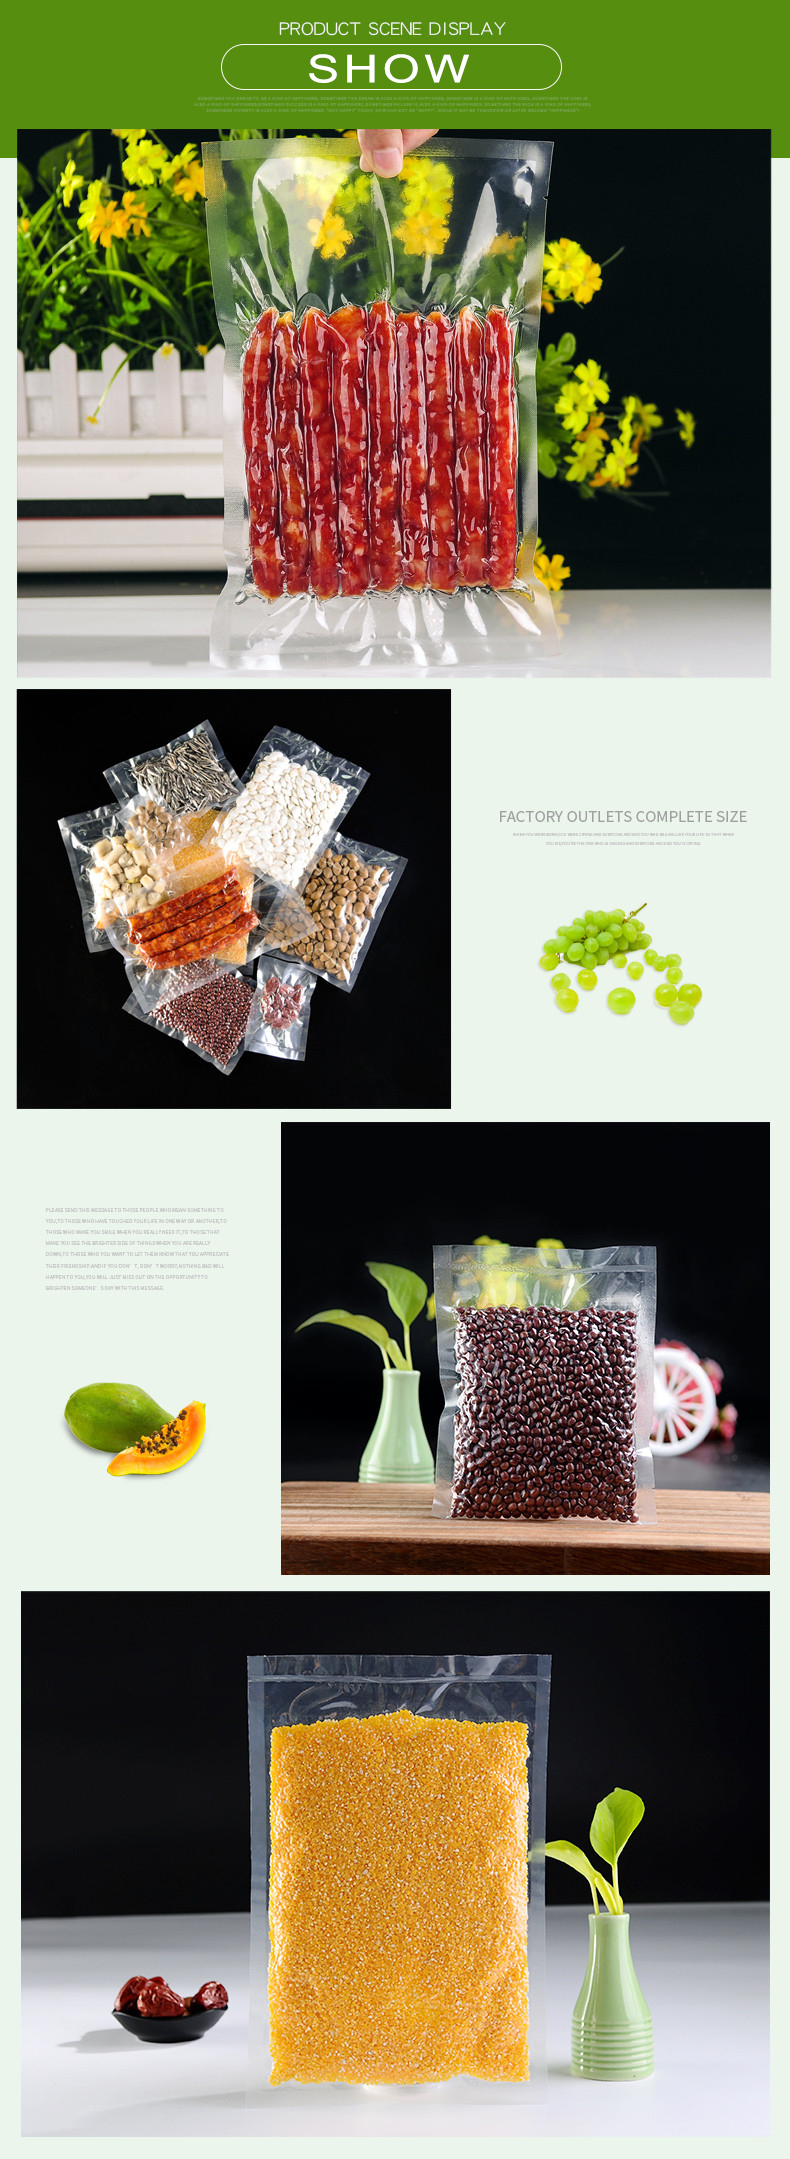 2 materials,Electronic product,Cosmetics,rice,snacks,grain (2)